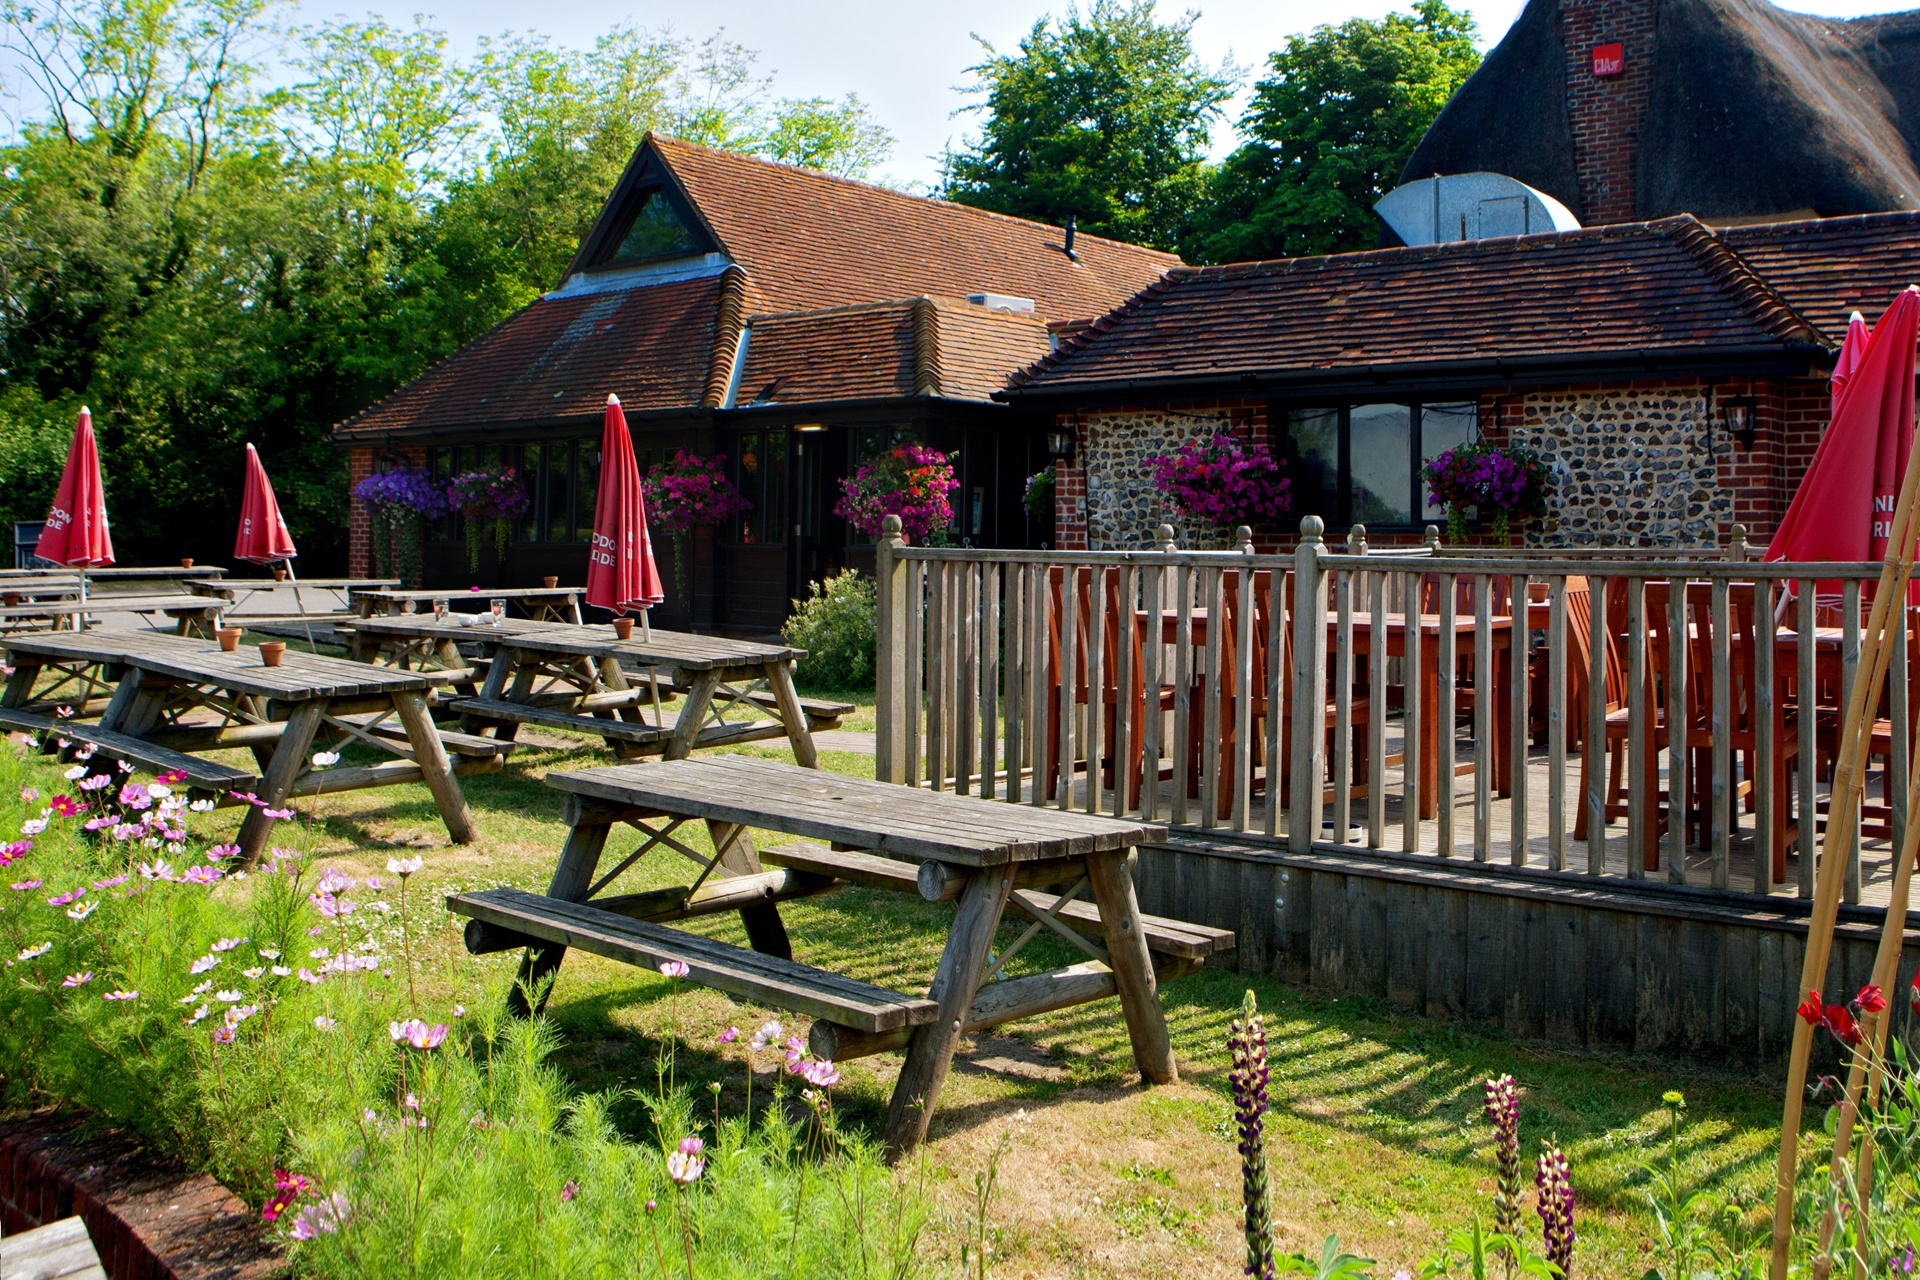 The Red Lion, Chalton - Merry Wives of Windsor